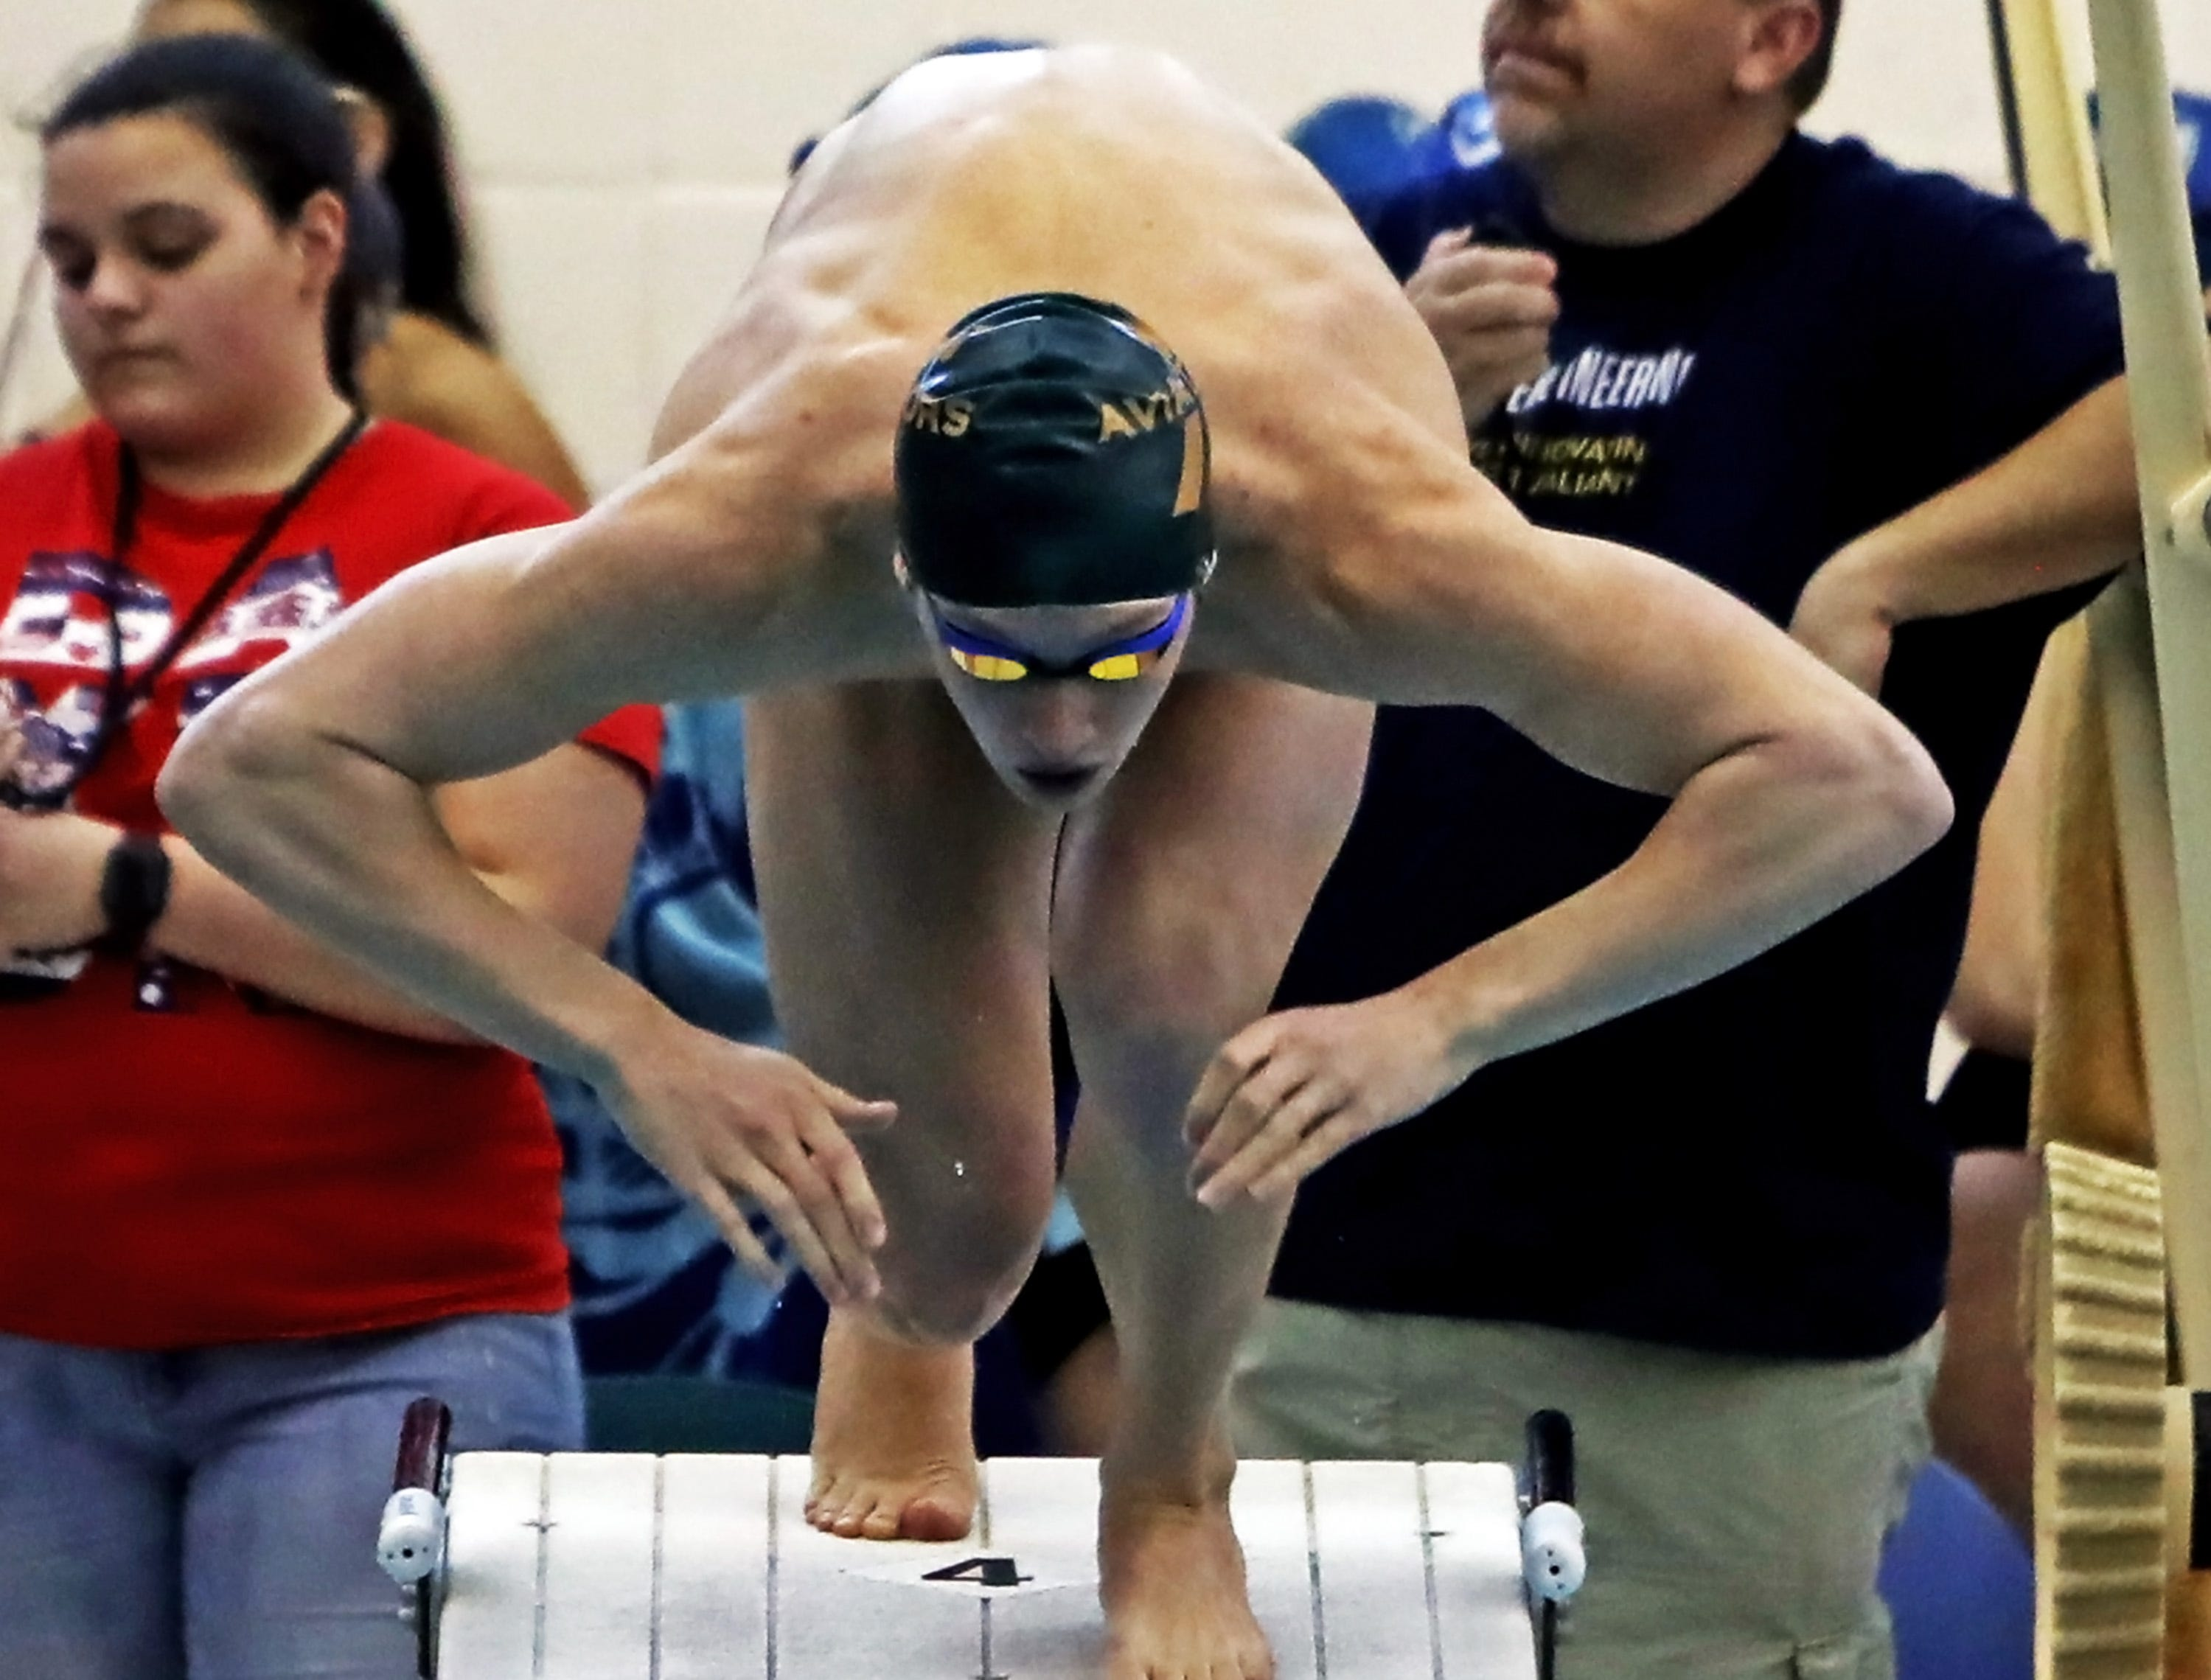 Jake Foster from Sycamore explodes off the starting platform in the boys 200-yard breast stroke at the SW Ohio Swim Classic at Mason.